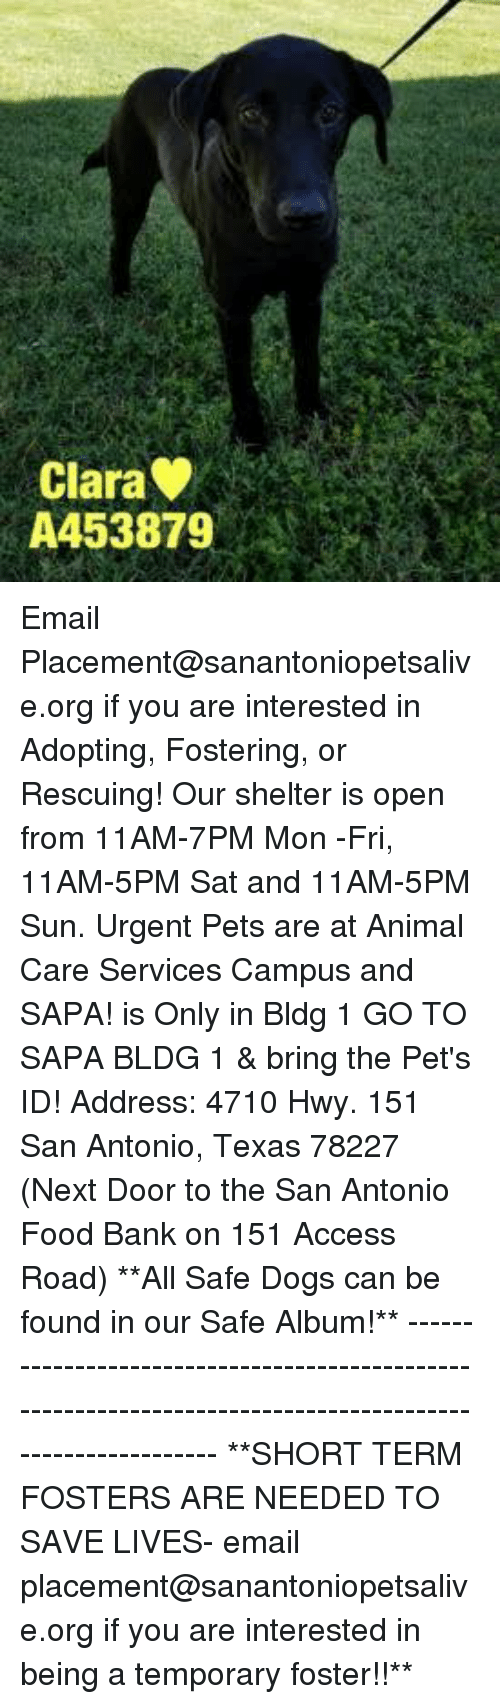 Dogs, Food, and Memes: Clara  A453879 Email Placement@sanantoniopetsalive.org if you are interested in Adopting, Fostering, or Rescuing!  Our shelter is open from 11AM-7PM Mon -Fri, 11AM-5PM Sat and 11AM-5PM Sun.  Urgent Pets are at Animal Care Services Campus and SAPA! is Only in Bldg 1 GO TO SAPA BLDG 1 & bring the Pet's ID! Address: 4710 Hwy. 151 San Antonio, Texas 78227 (Next Door to the San Antonio Food Bank on 151 Access Road)  **All Safe Dogs can be found in our Safe Album!** ---------------------------------------------------------------------------------------------------------- **SHORT TERM FOSTERS ARE NEEDED TO SAVE LIVES- email placement@sanantoniopetsalive.org if you are interested in being a temporary foster!!**